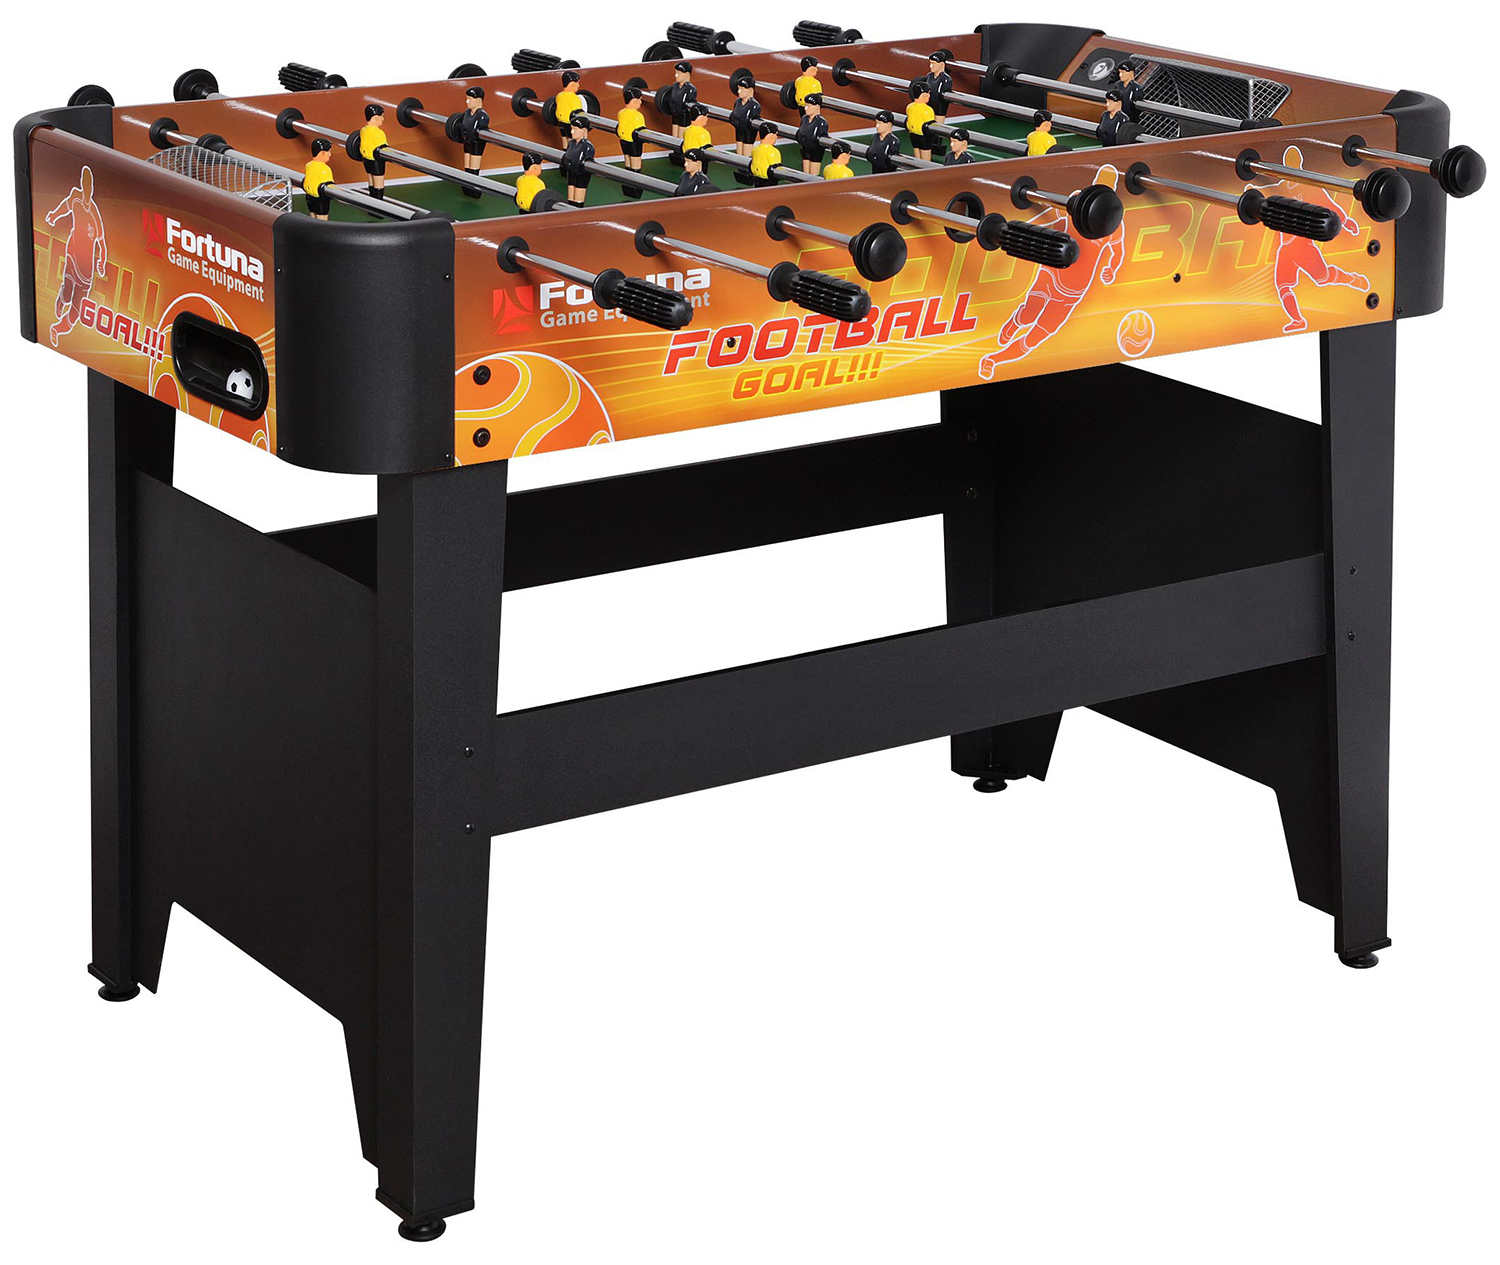 Fortuna Game Equipment Arena FRS-455 8093